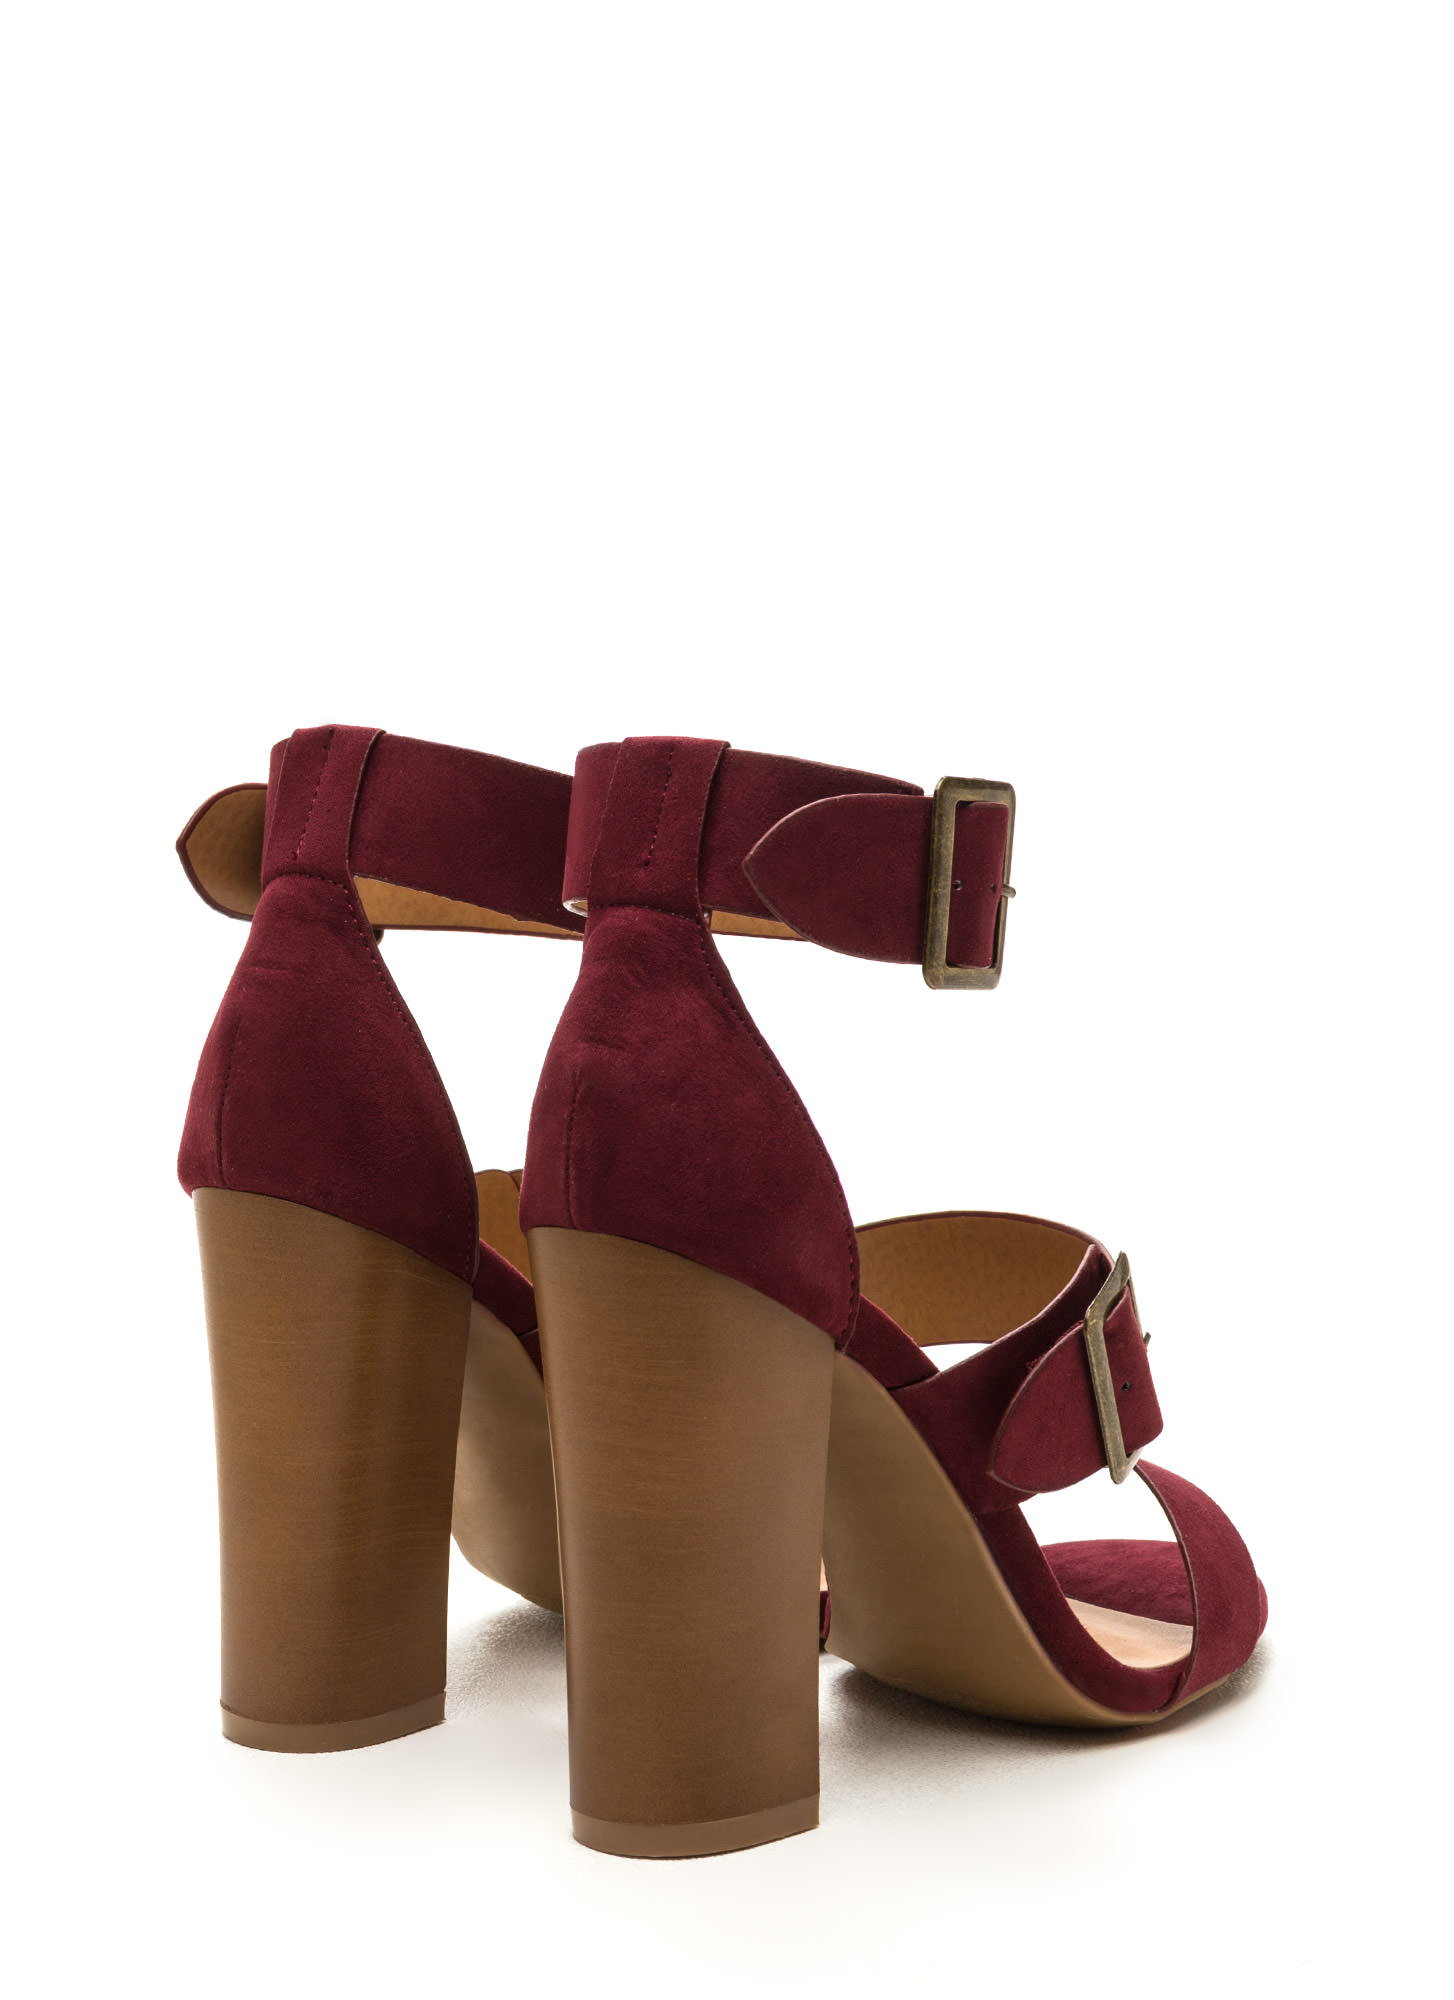 Chic Outcome Strappy Faux Suede Heels BURGUNDY